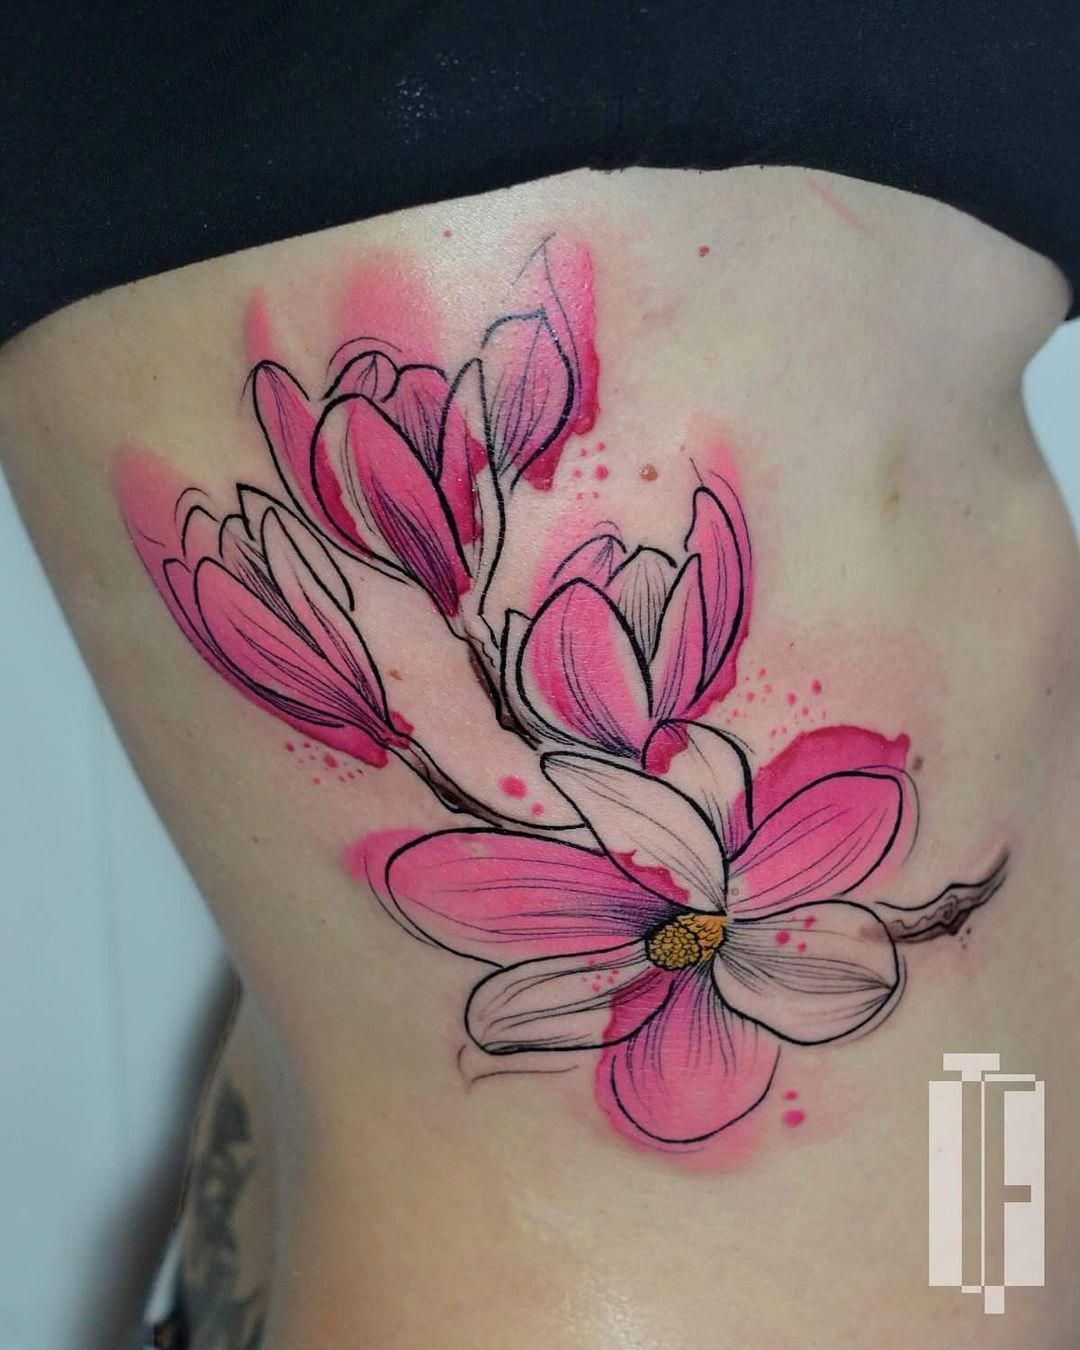 Watercolor Floral Abstract Tattoo Floral Tattoo Watercolor Tattoo